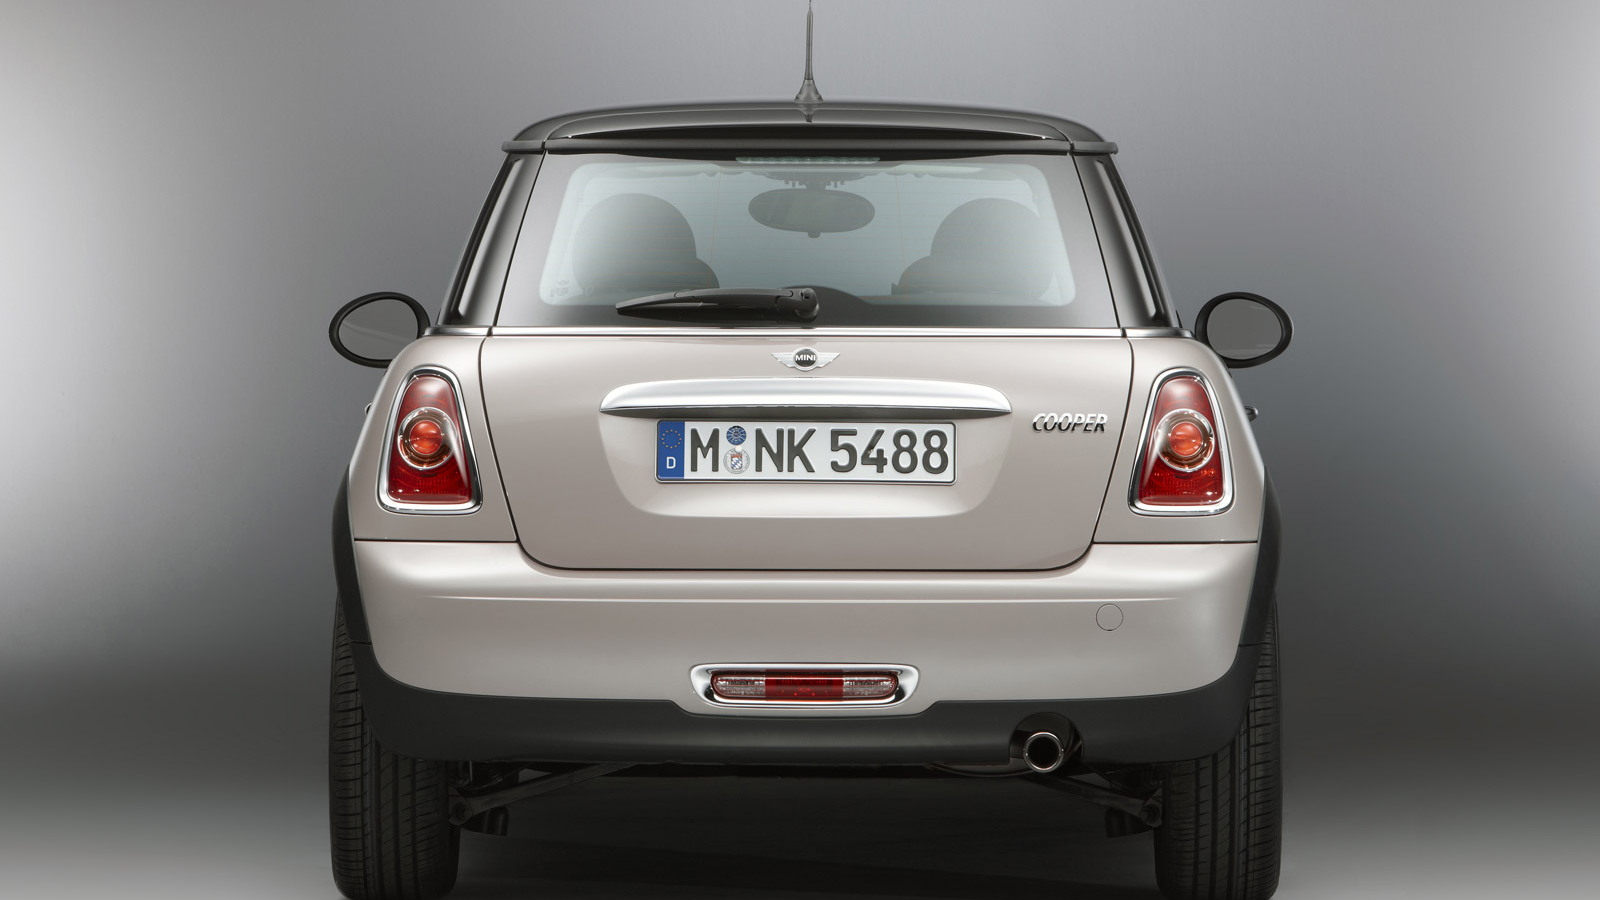 2012 MINI Baker Street special edition